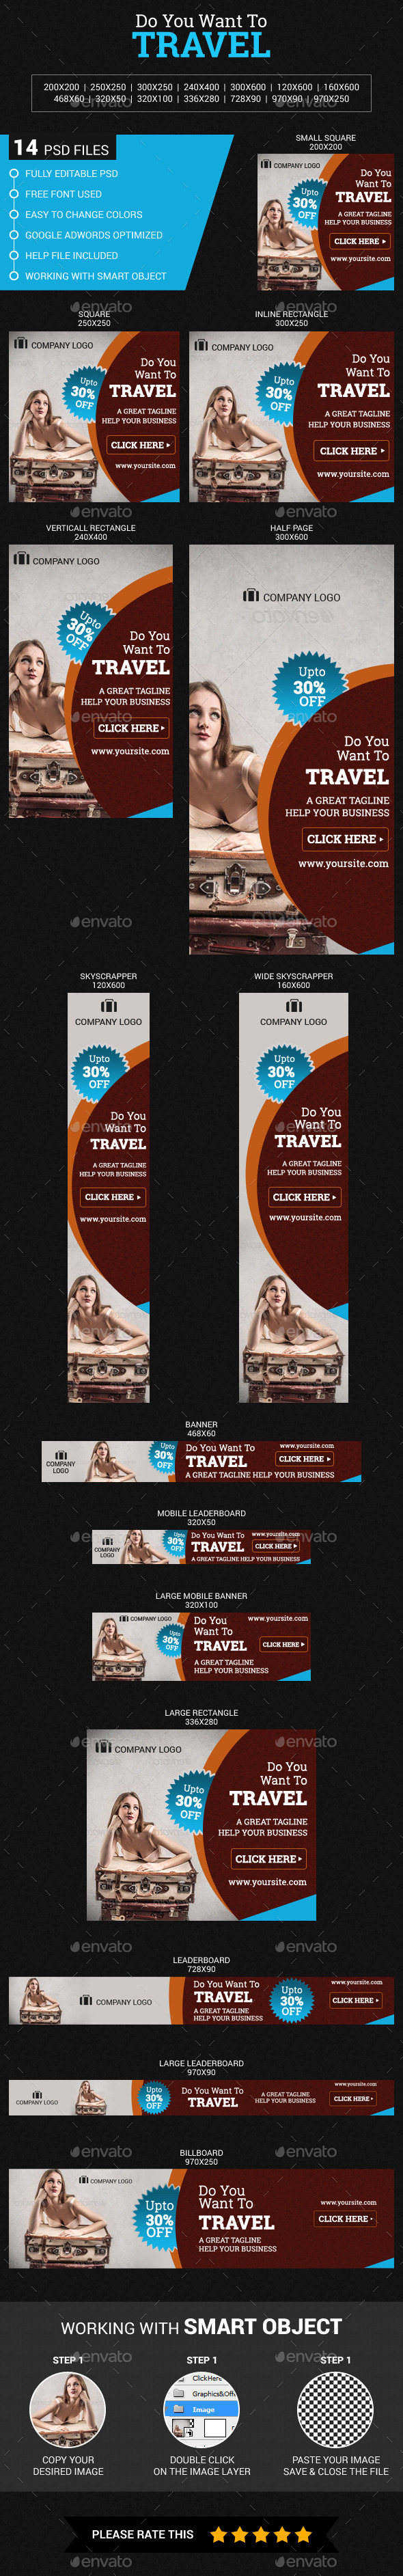 GraphicRiver Do You Want To Travel 11512581